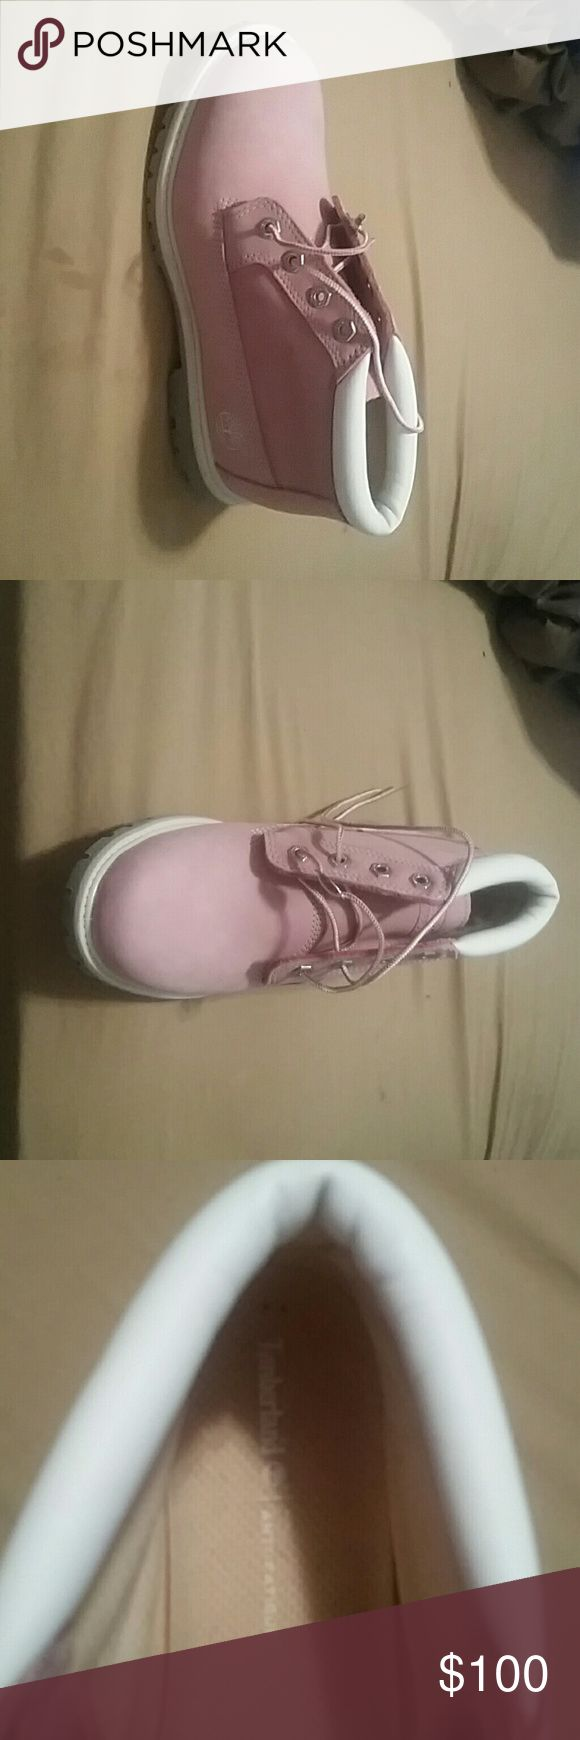 BRAND NEW PINK WATERPROOF TIMBERLAND BOOTS Brand new pink timberland boots never been worn TIMBERLAND Shoes Lace Up Boots